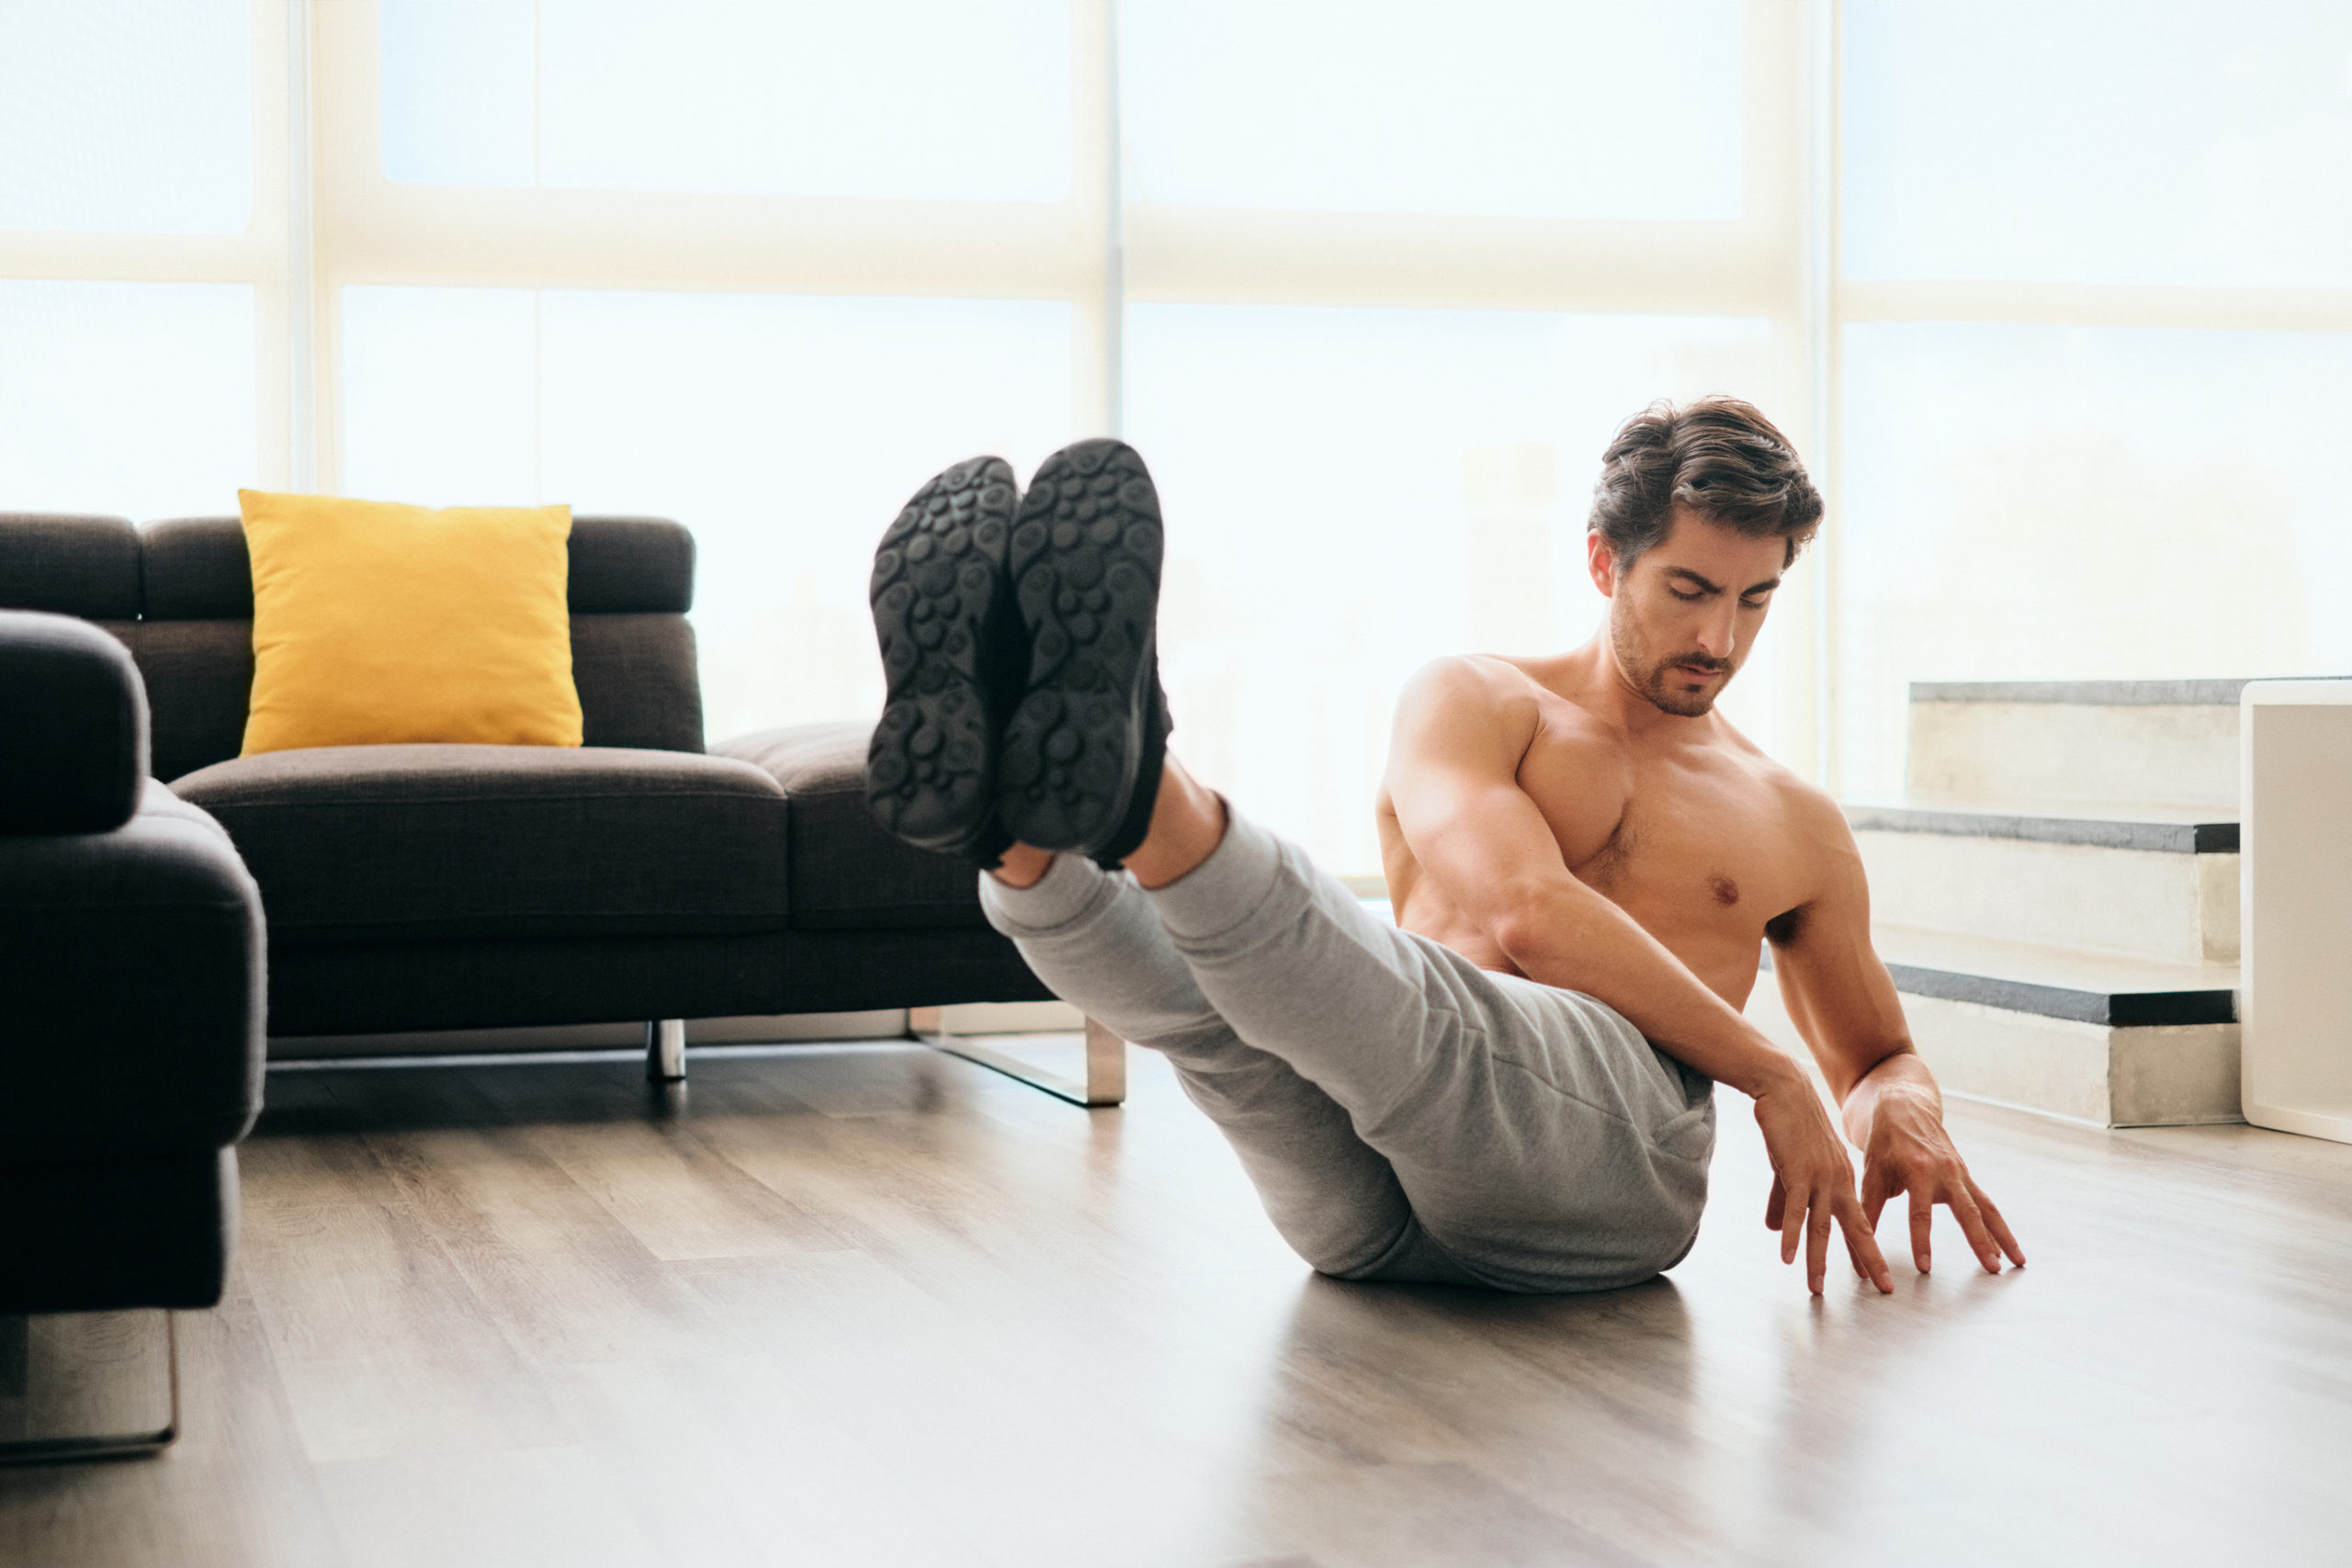 5 Home Exercises to Do During the COVID-19 Crisis